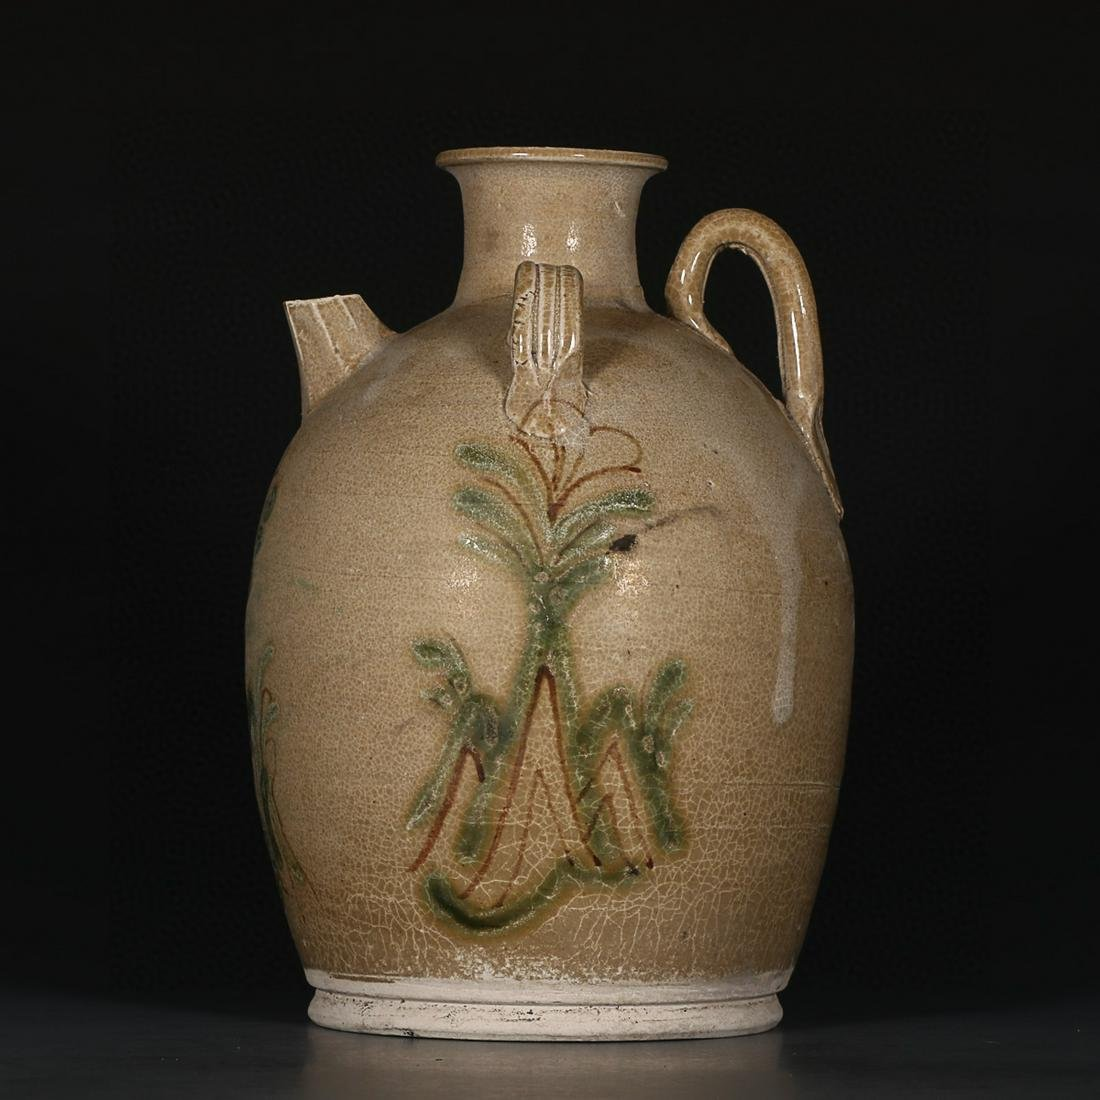 DING YAO FLOWERS AND PLANTS PATTERNING WINE POT